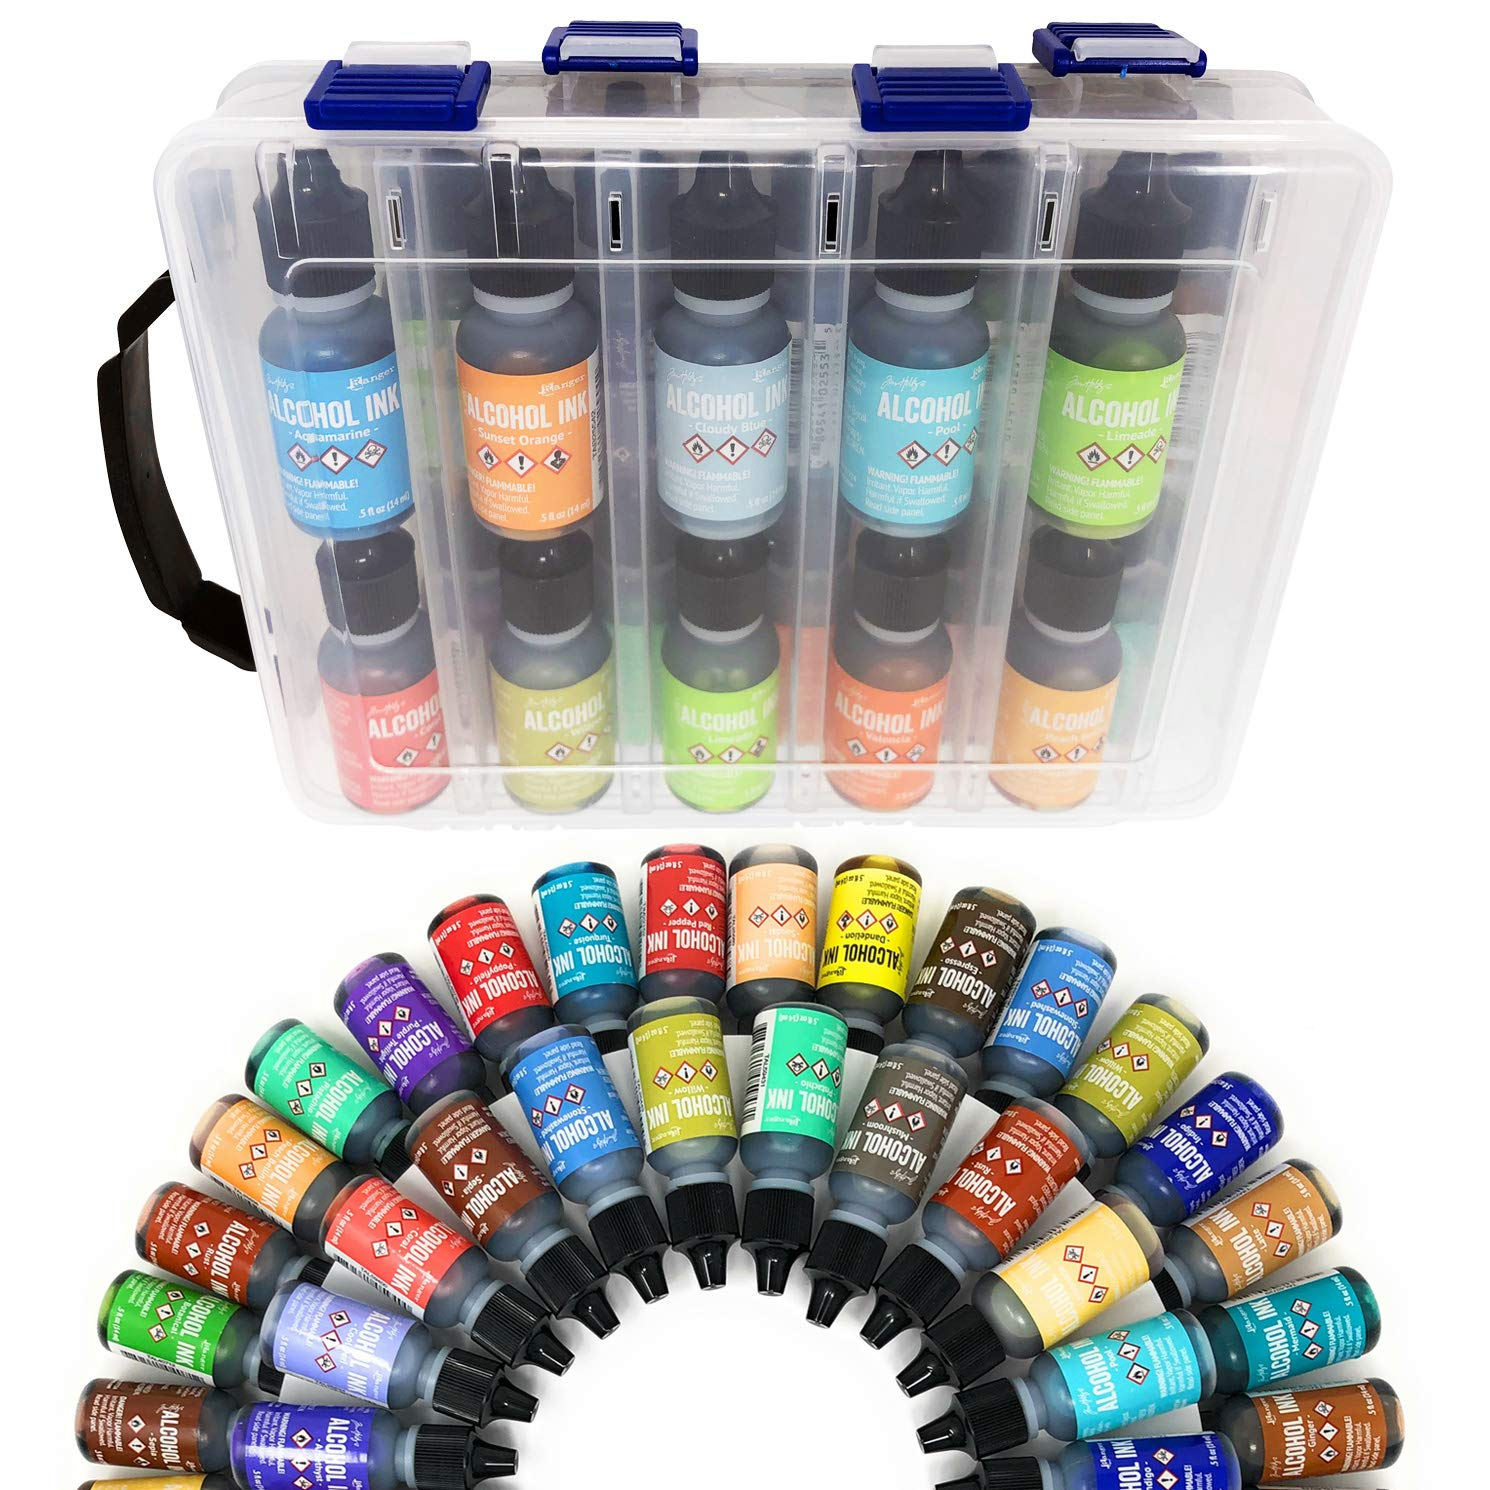 20x Tim Holtz Alcohol Ink .5oz Bottles (Assorted Colors), Pixiss Alcohol Ink Storage Carrying Case Organizer, Stores 20x 0.5-Ounce Bottles of Alcohol Ink, Stickles, Glossy Accents or Reinkers